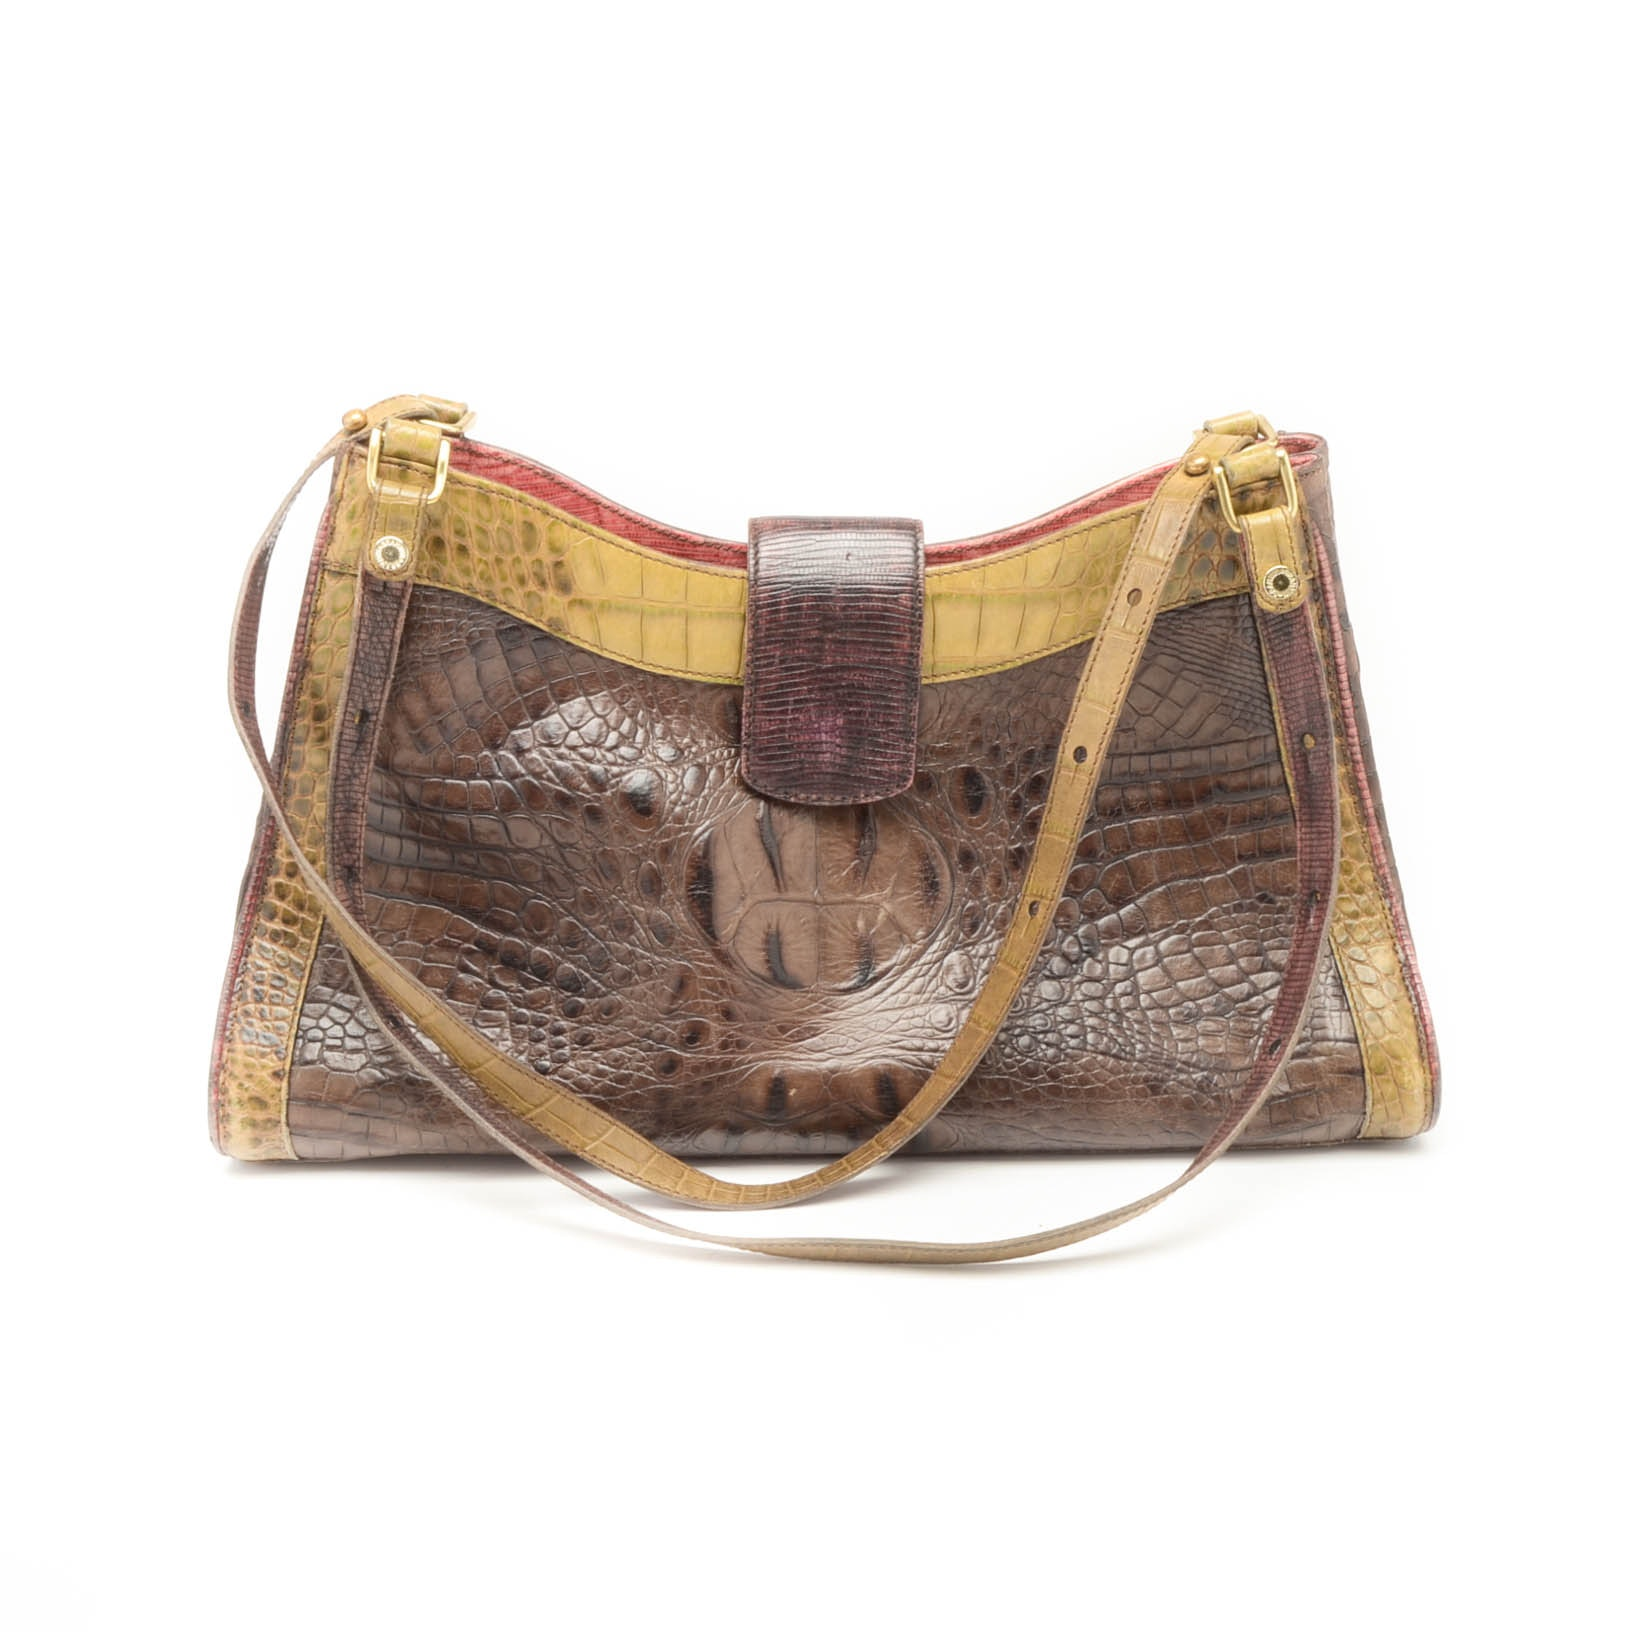 Brahmin Alligator Embossed Leather Satchel